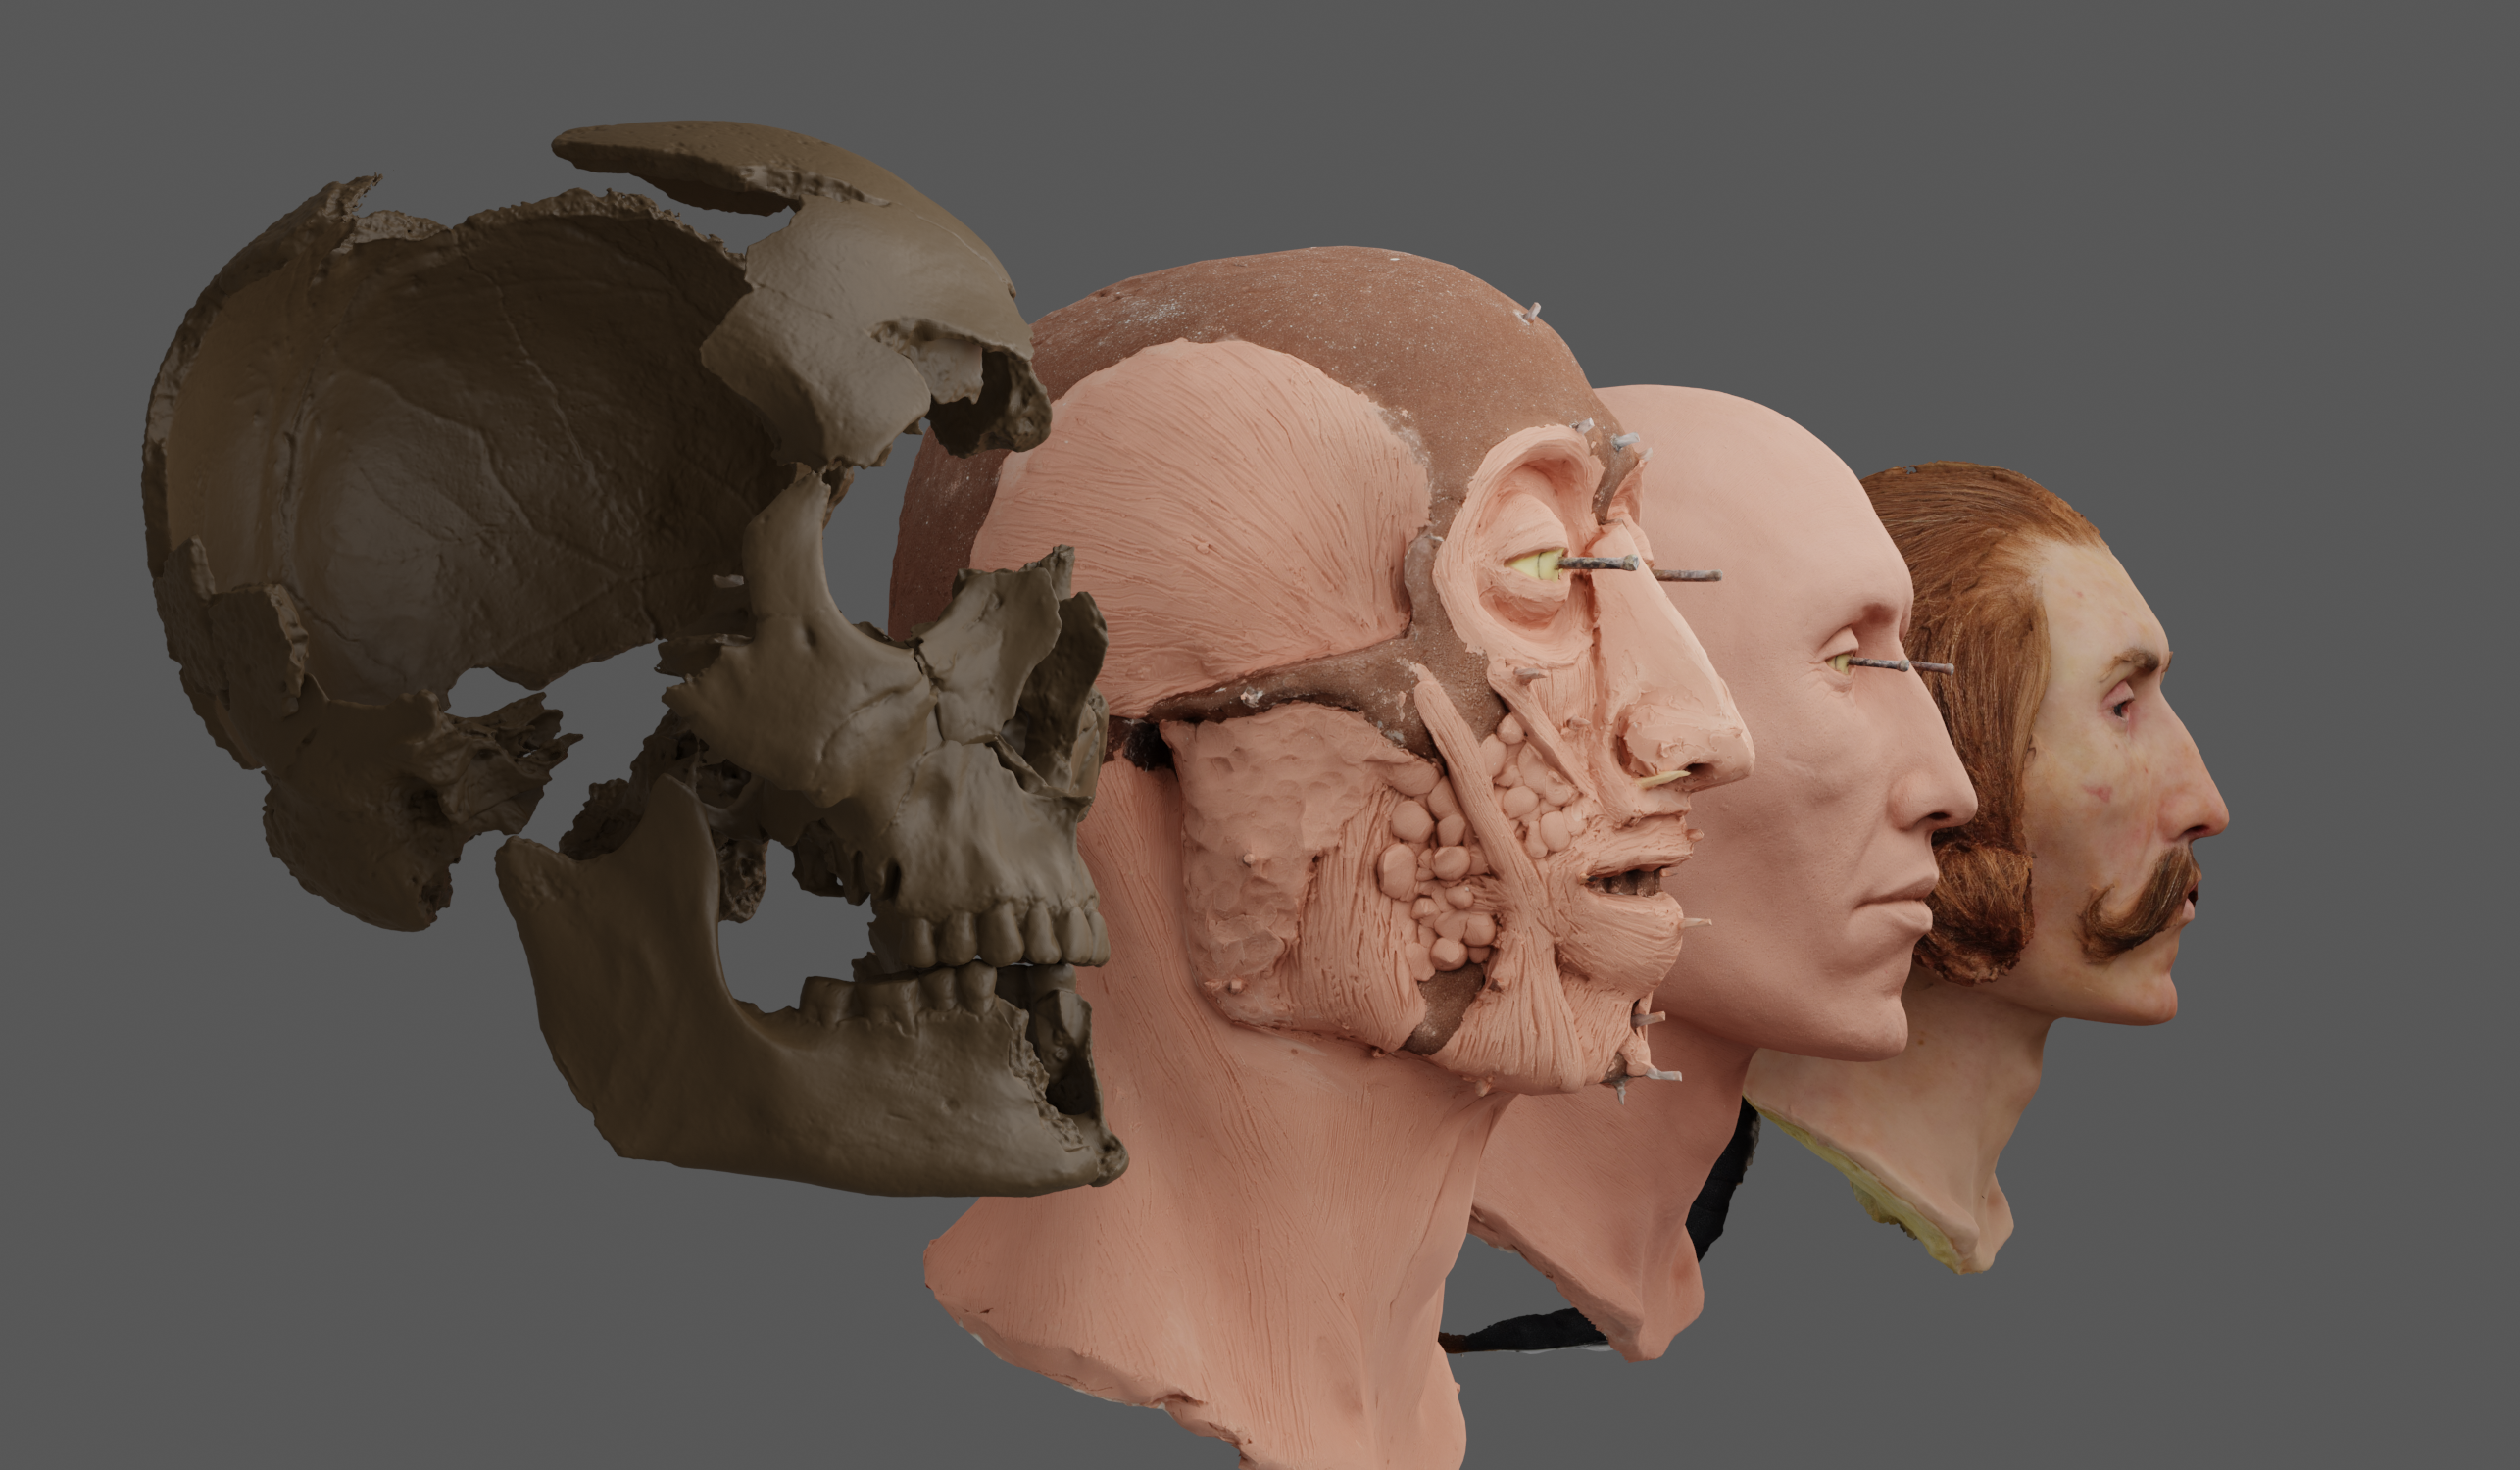 Visualizing the process of facial reconstruction in AR